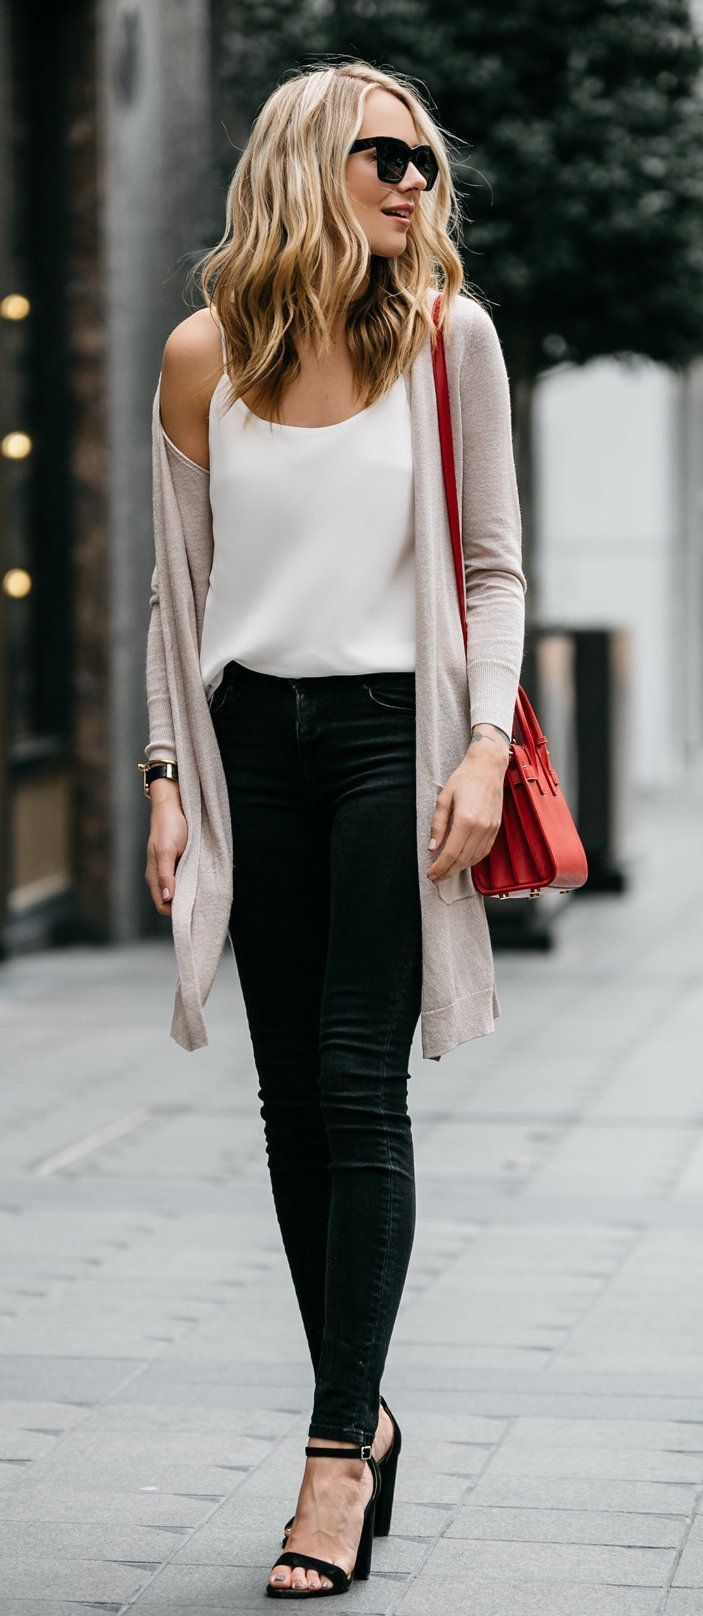 Beige cardigan over white camisole and black jeans.